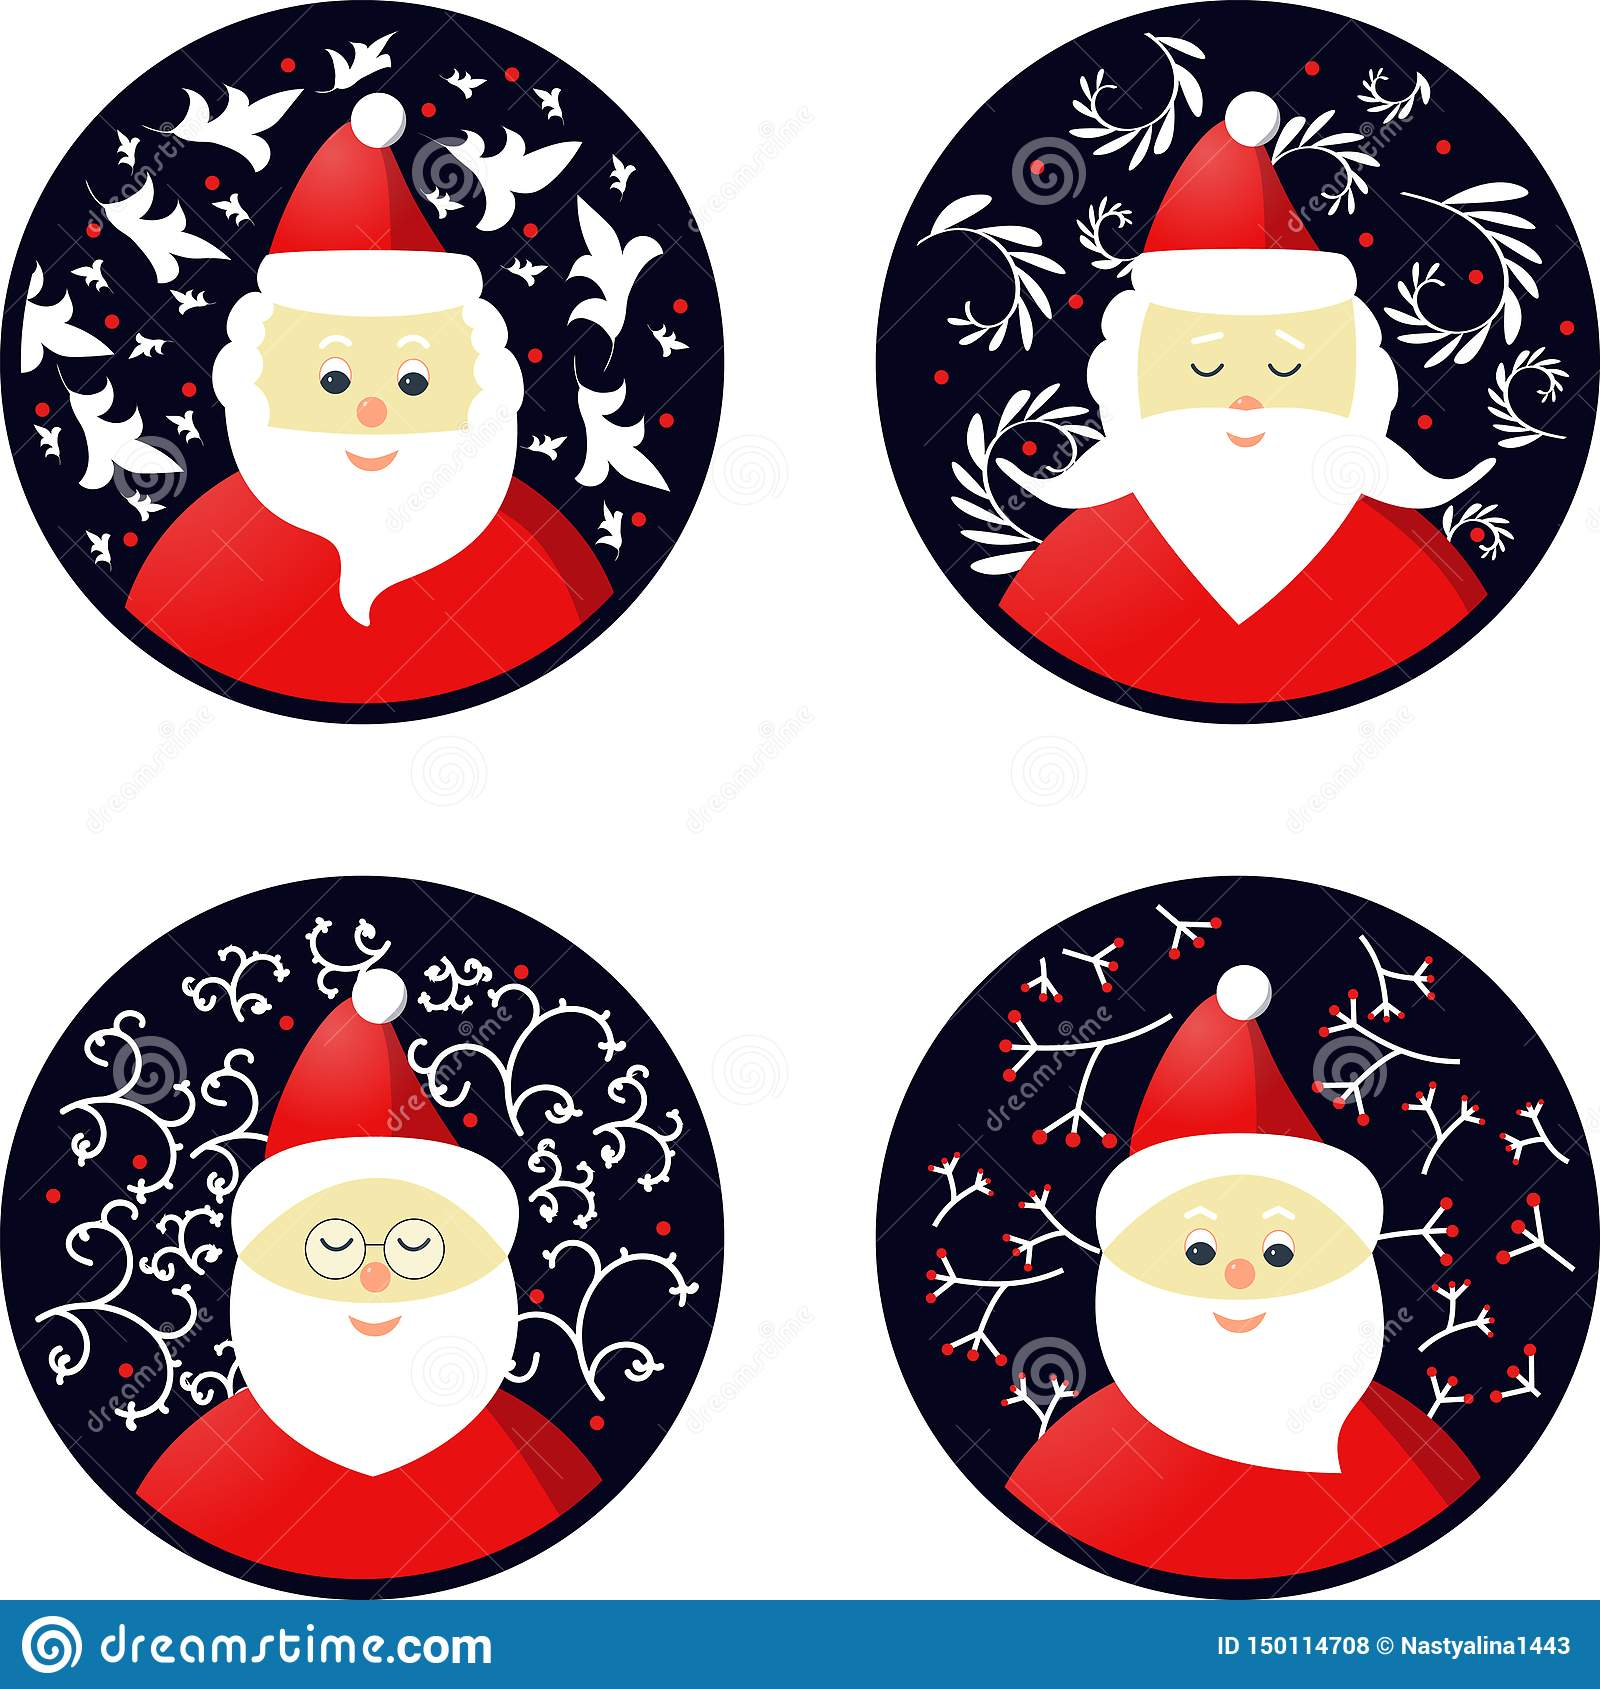 Icons of Santa Claus in the form Christmas toys.